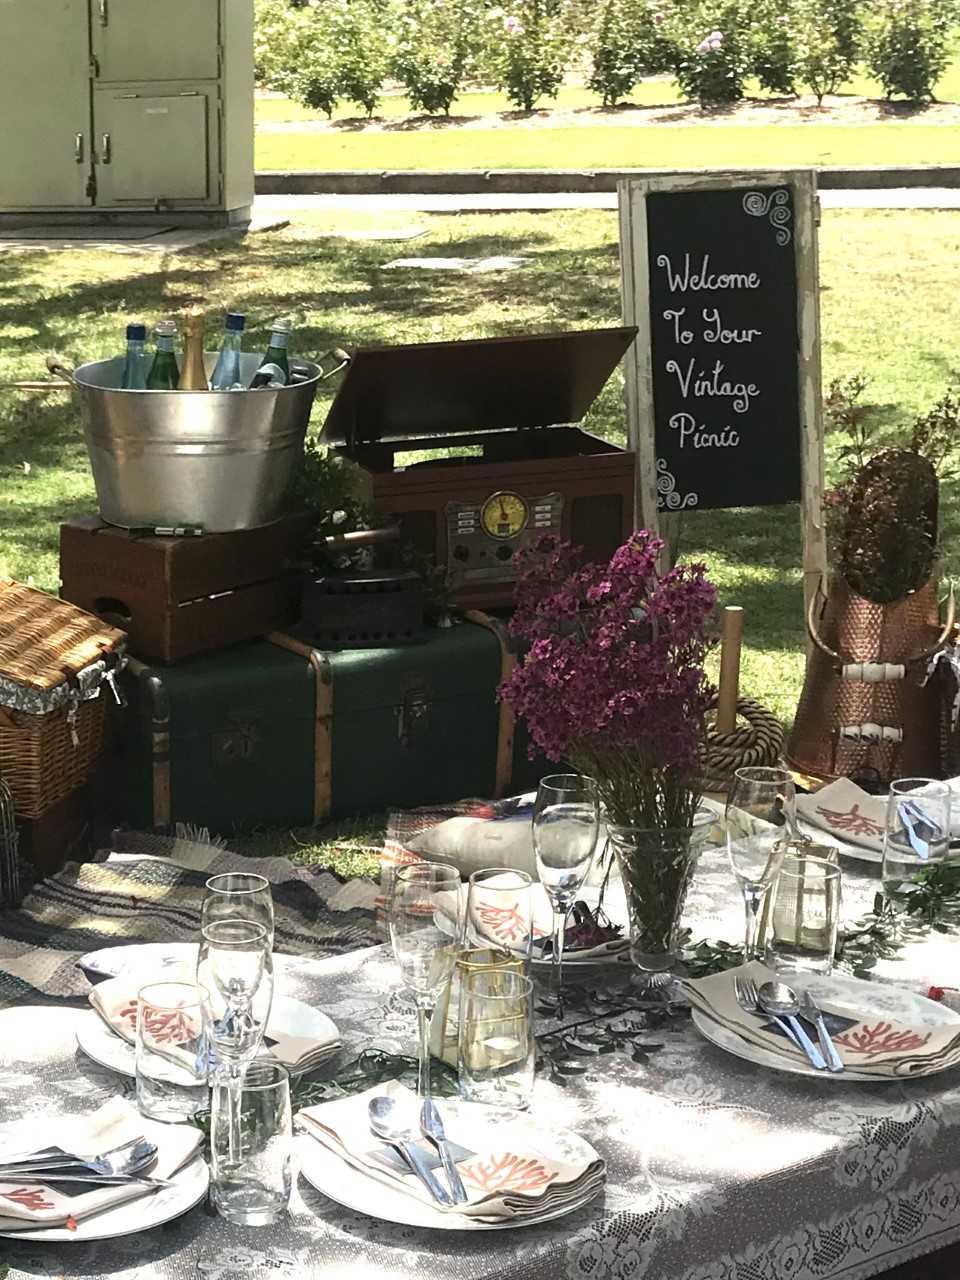 picnic spreads set up by the Vintage Picnic Company